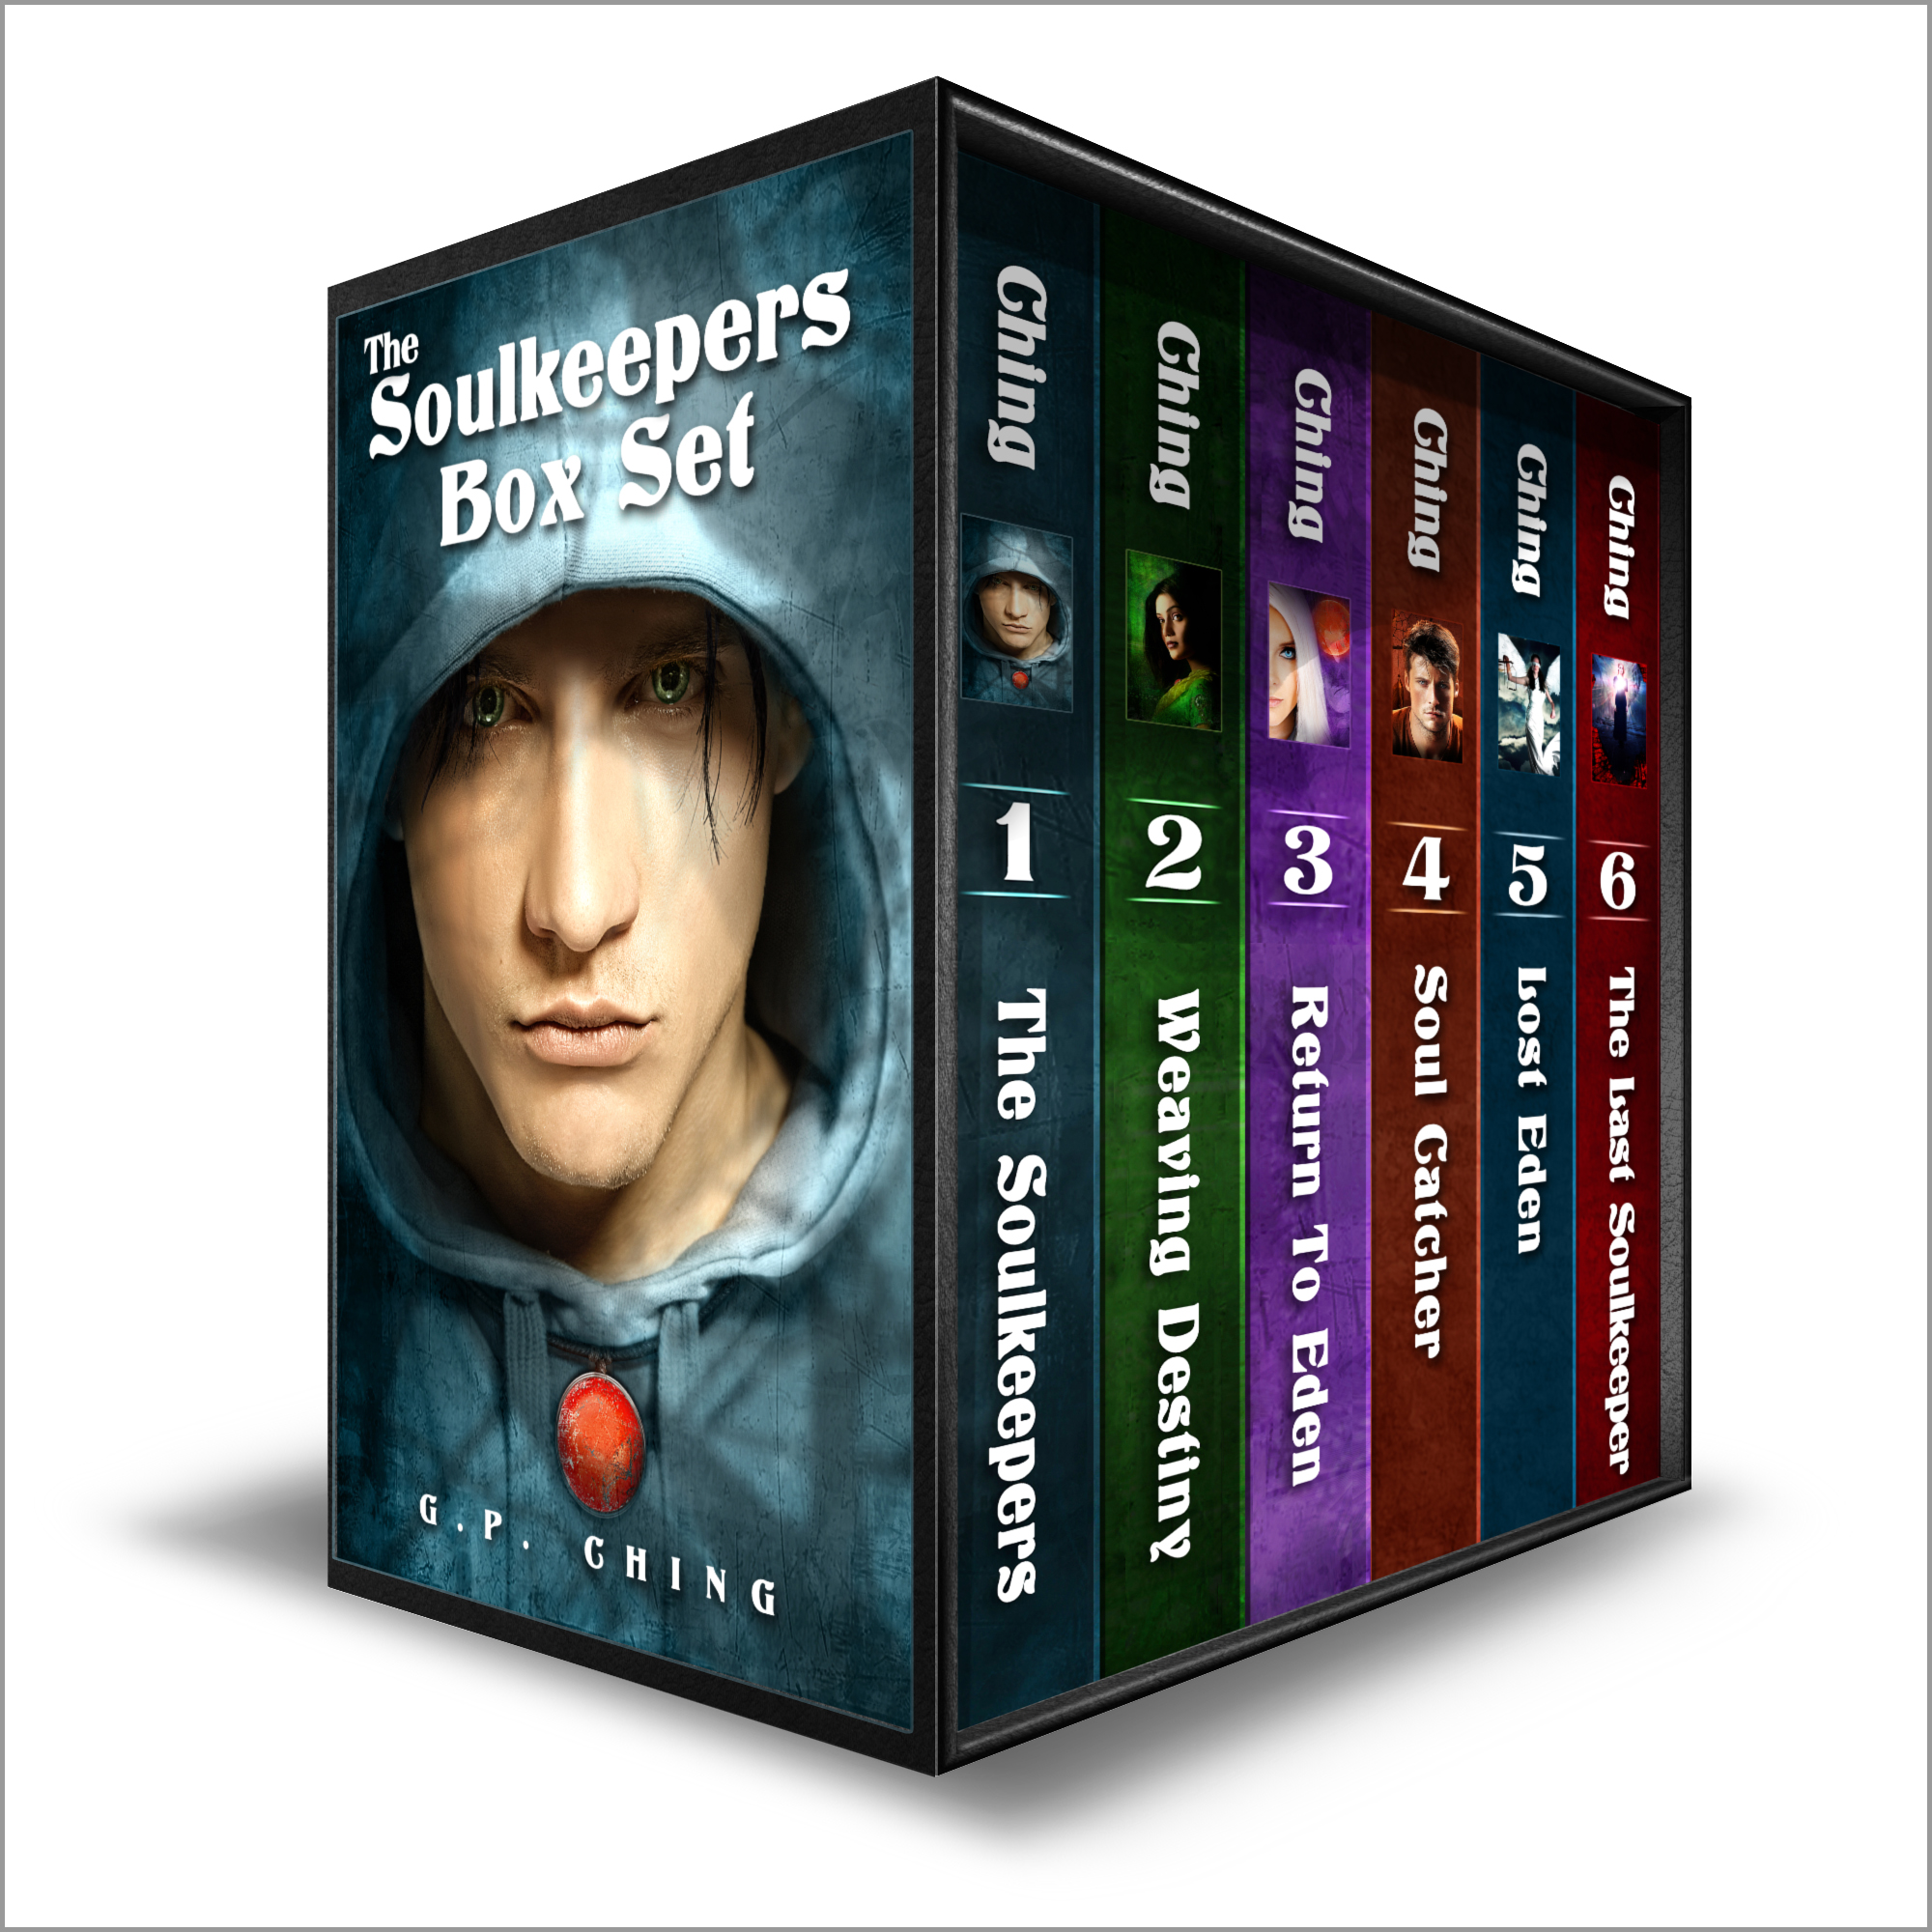 The Soulkeepers Box Set